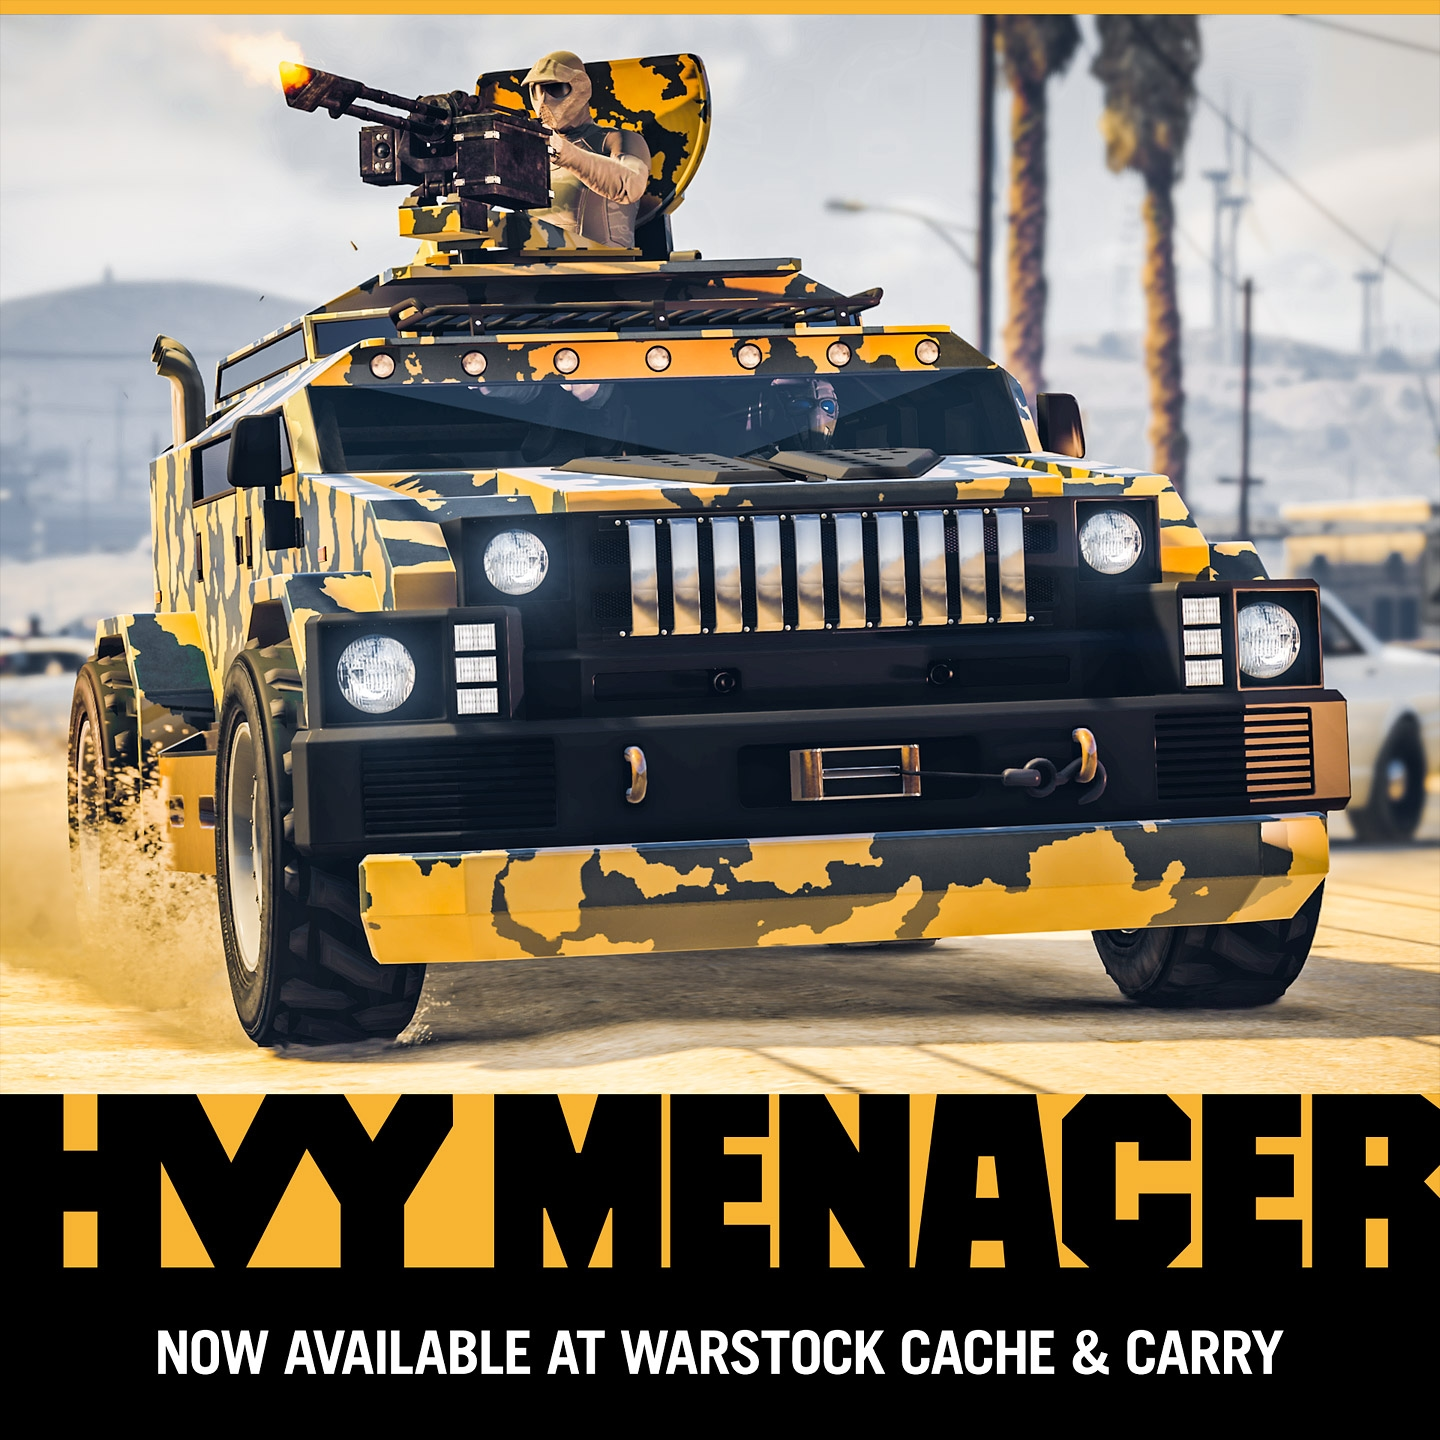 The HVY Menacer Weaponized Vehicle - Rockstar Games